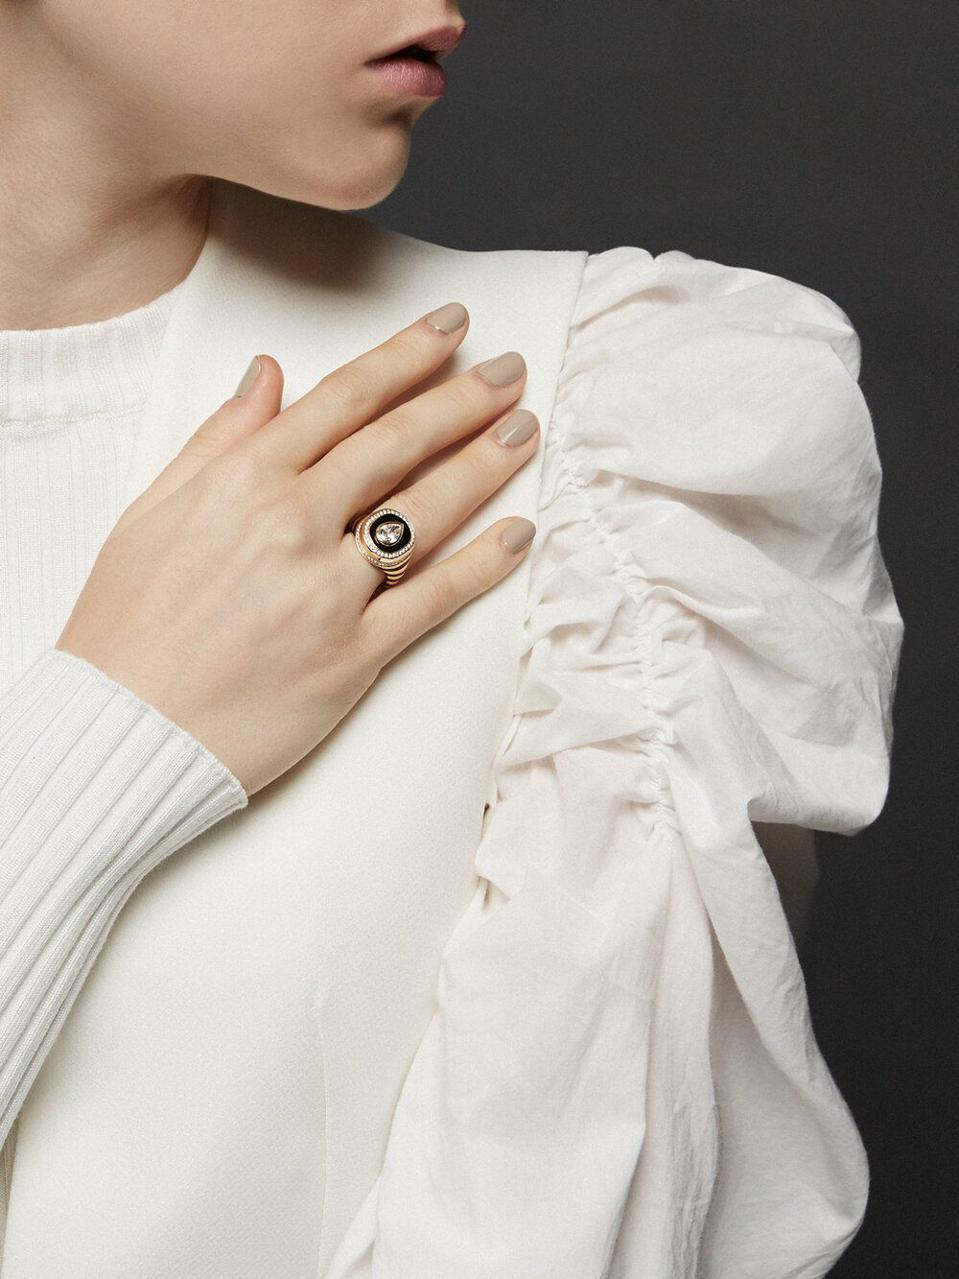 The Baret Signet Ring is a super-modern take on a classic shape. A pear-shaped diamond tops a beautiful, bold ring. Yellow gold and black enamel make for a bold, geographic statement. Destined to become a future heirloom.